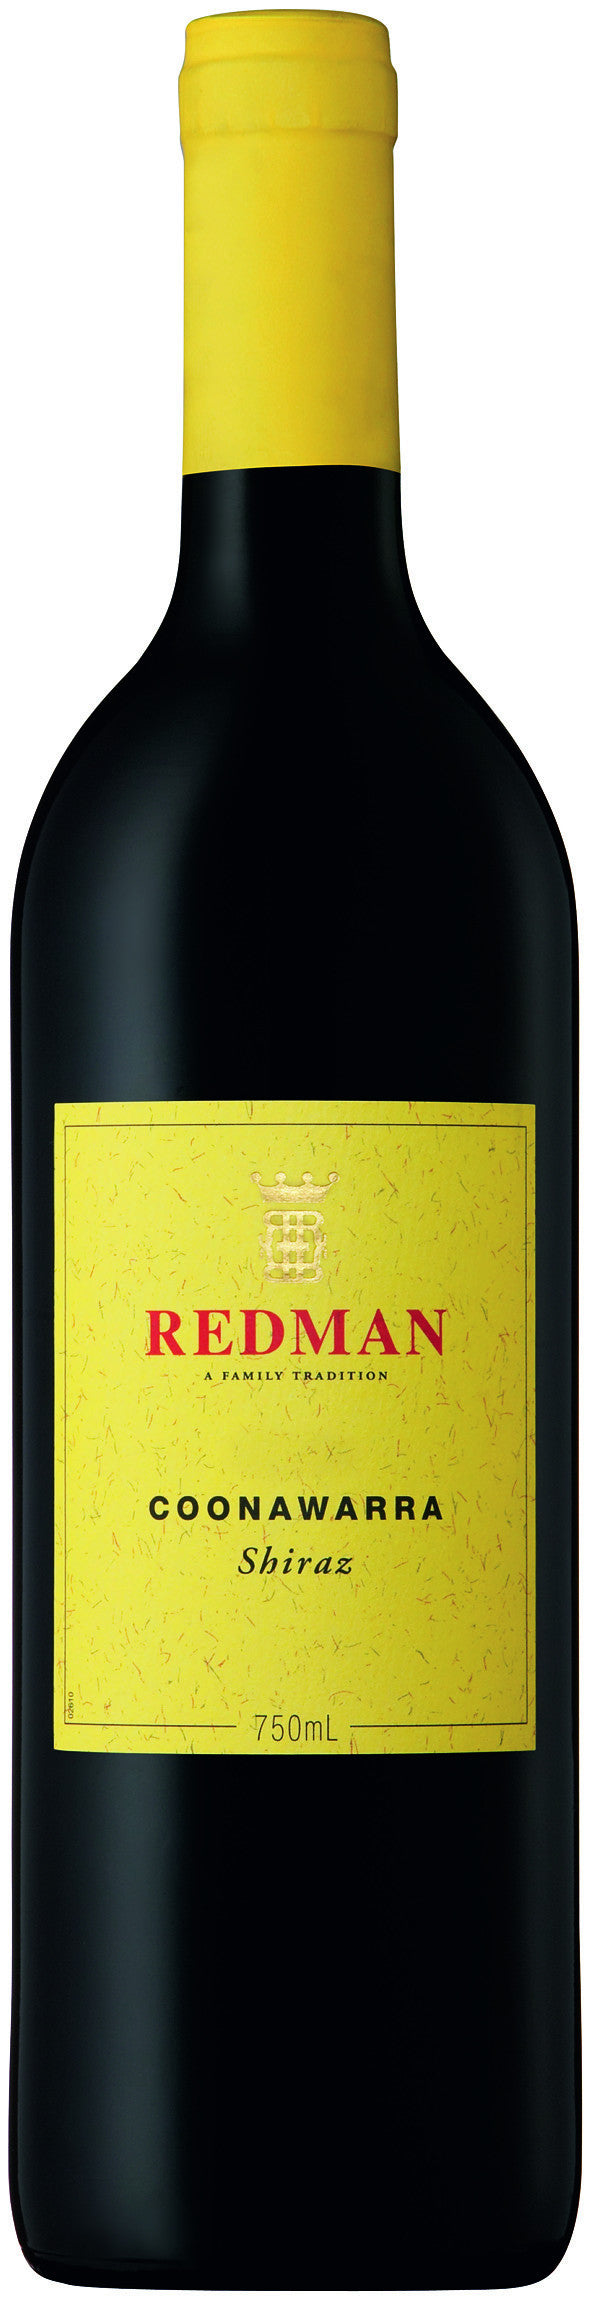 Redman Shiraz 2013 - Network Wines